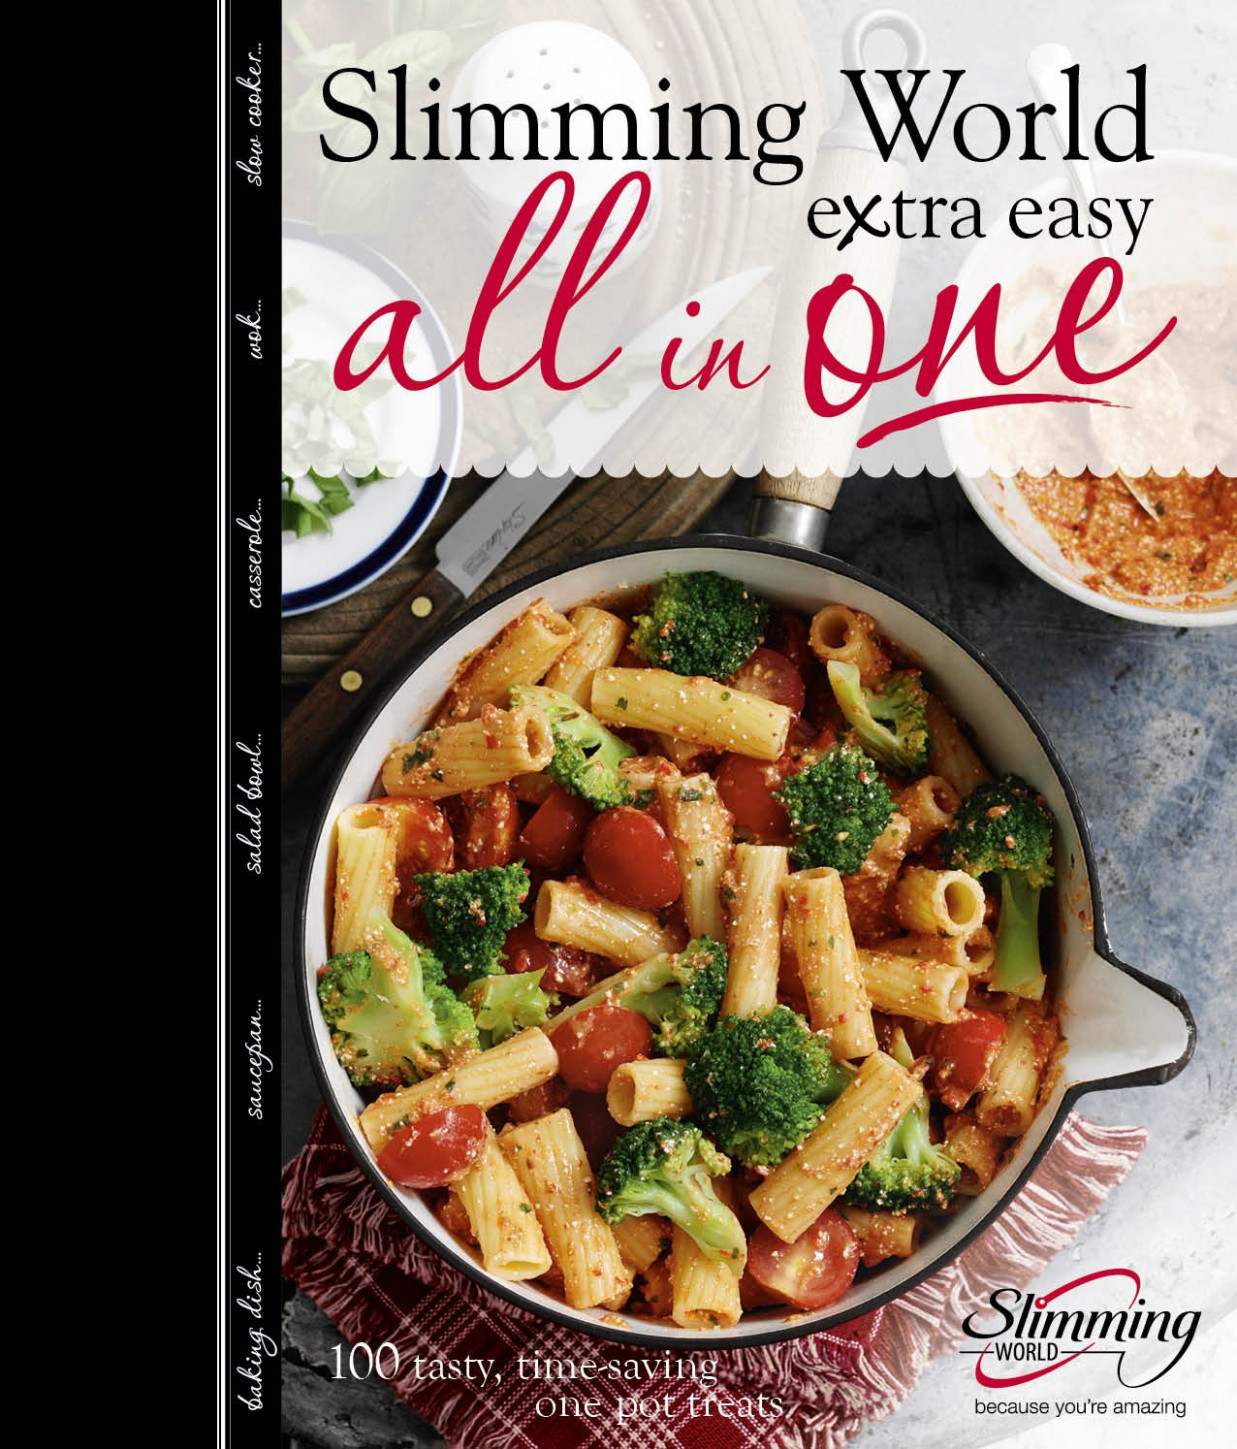 Slimming World Extra Easy All in One: Amazon.co.uk: Slimming ...